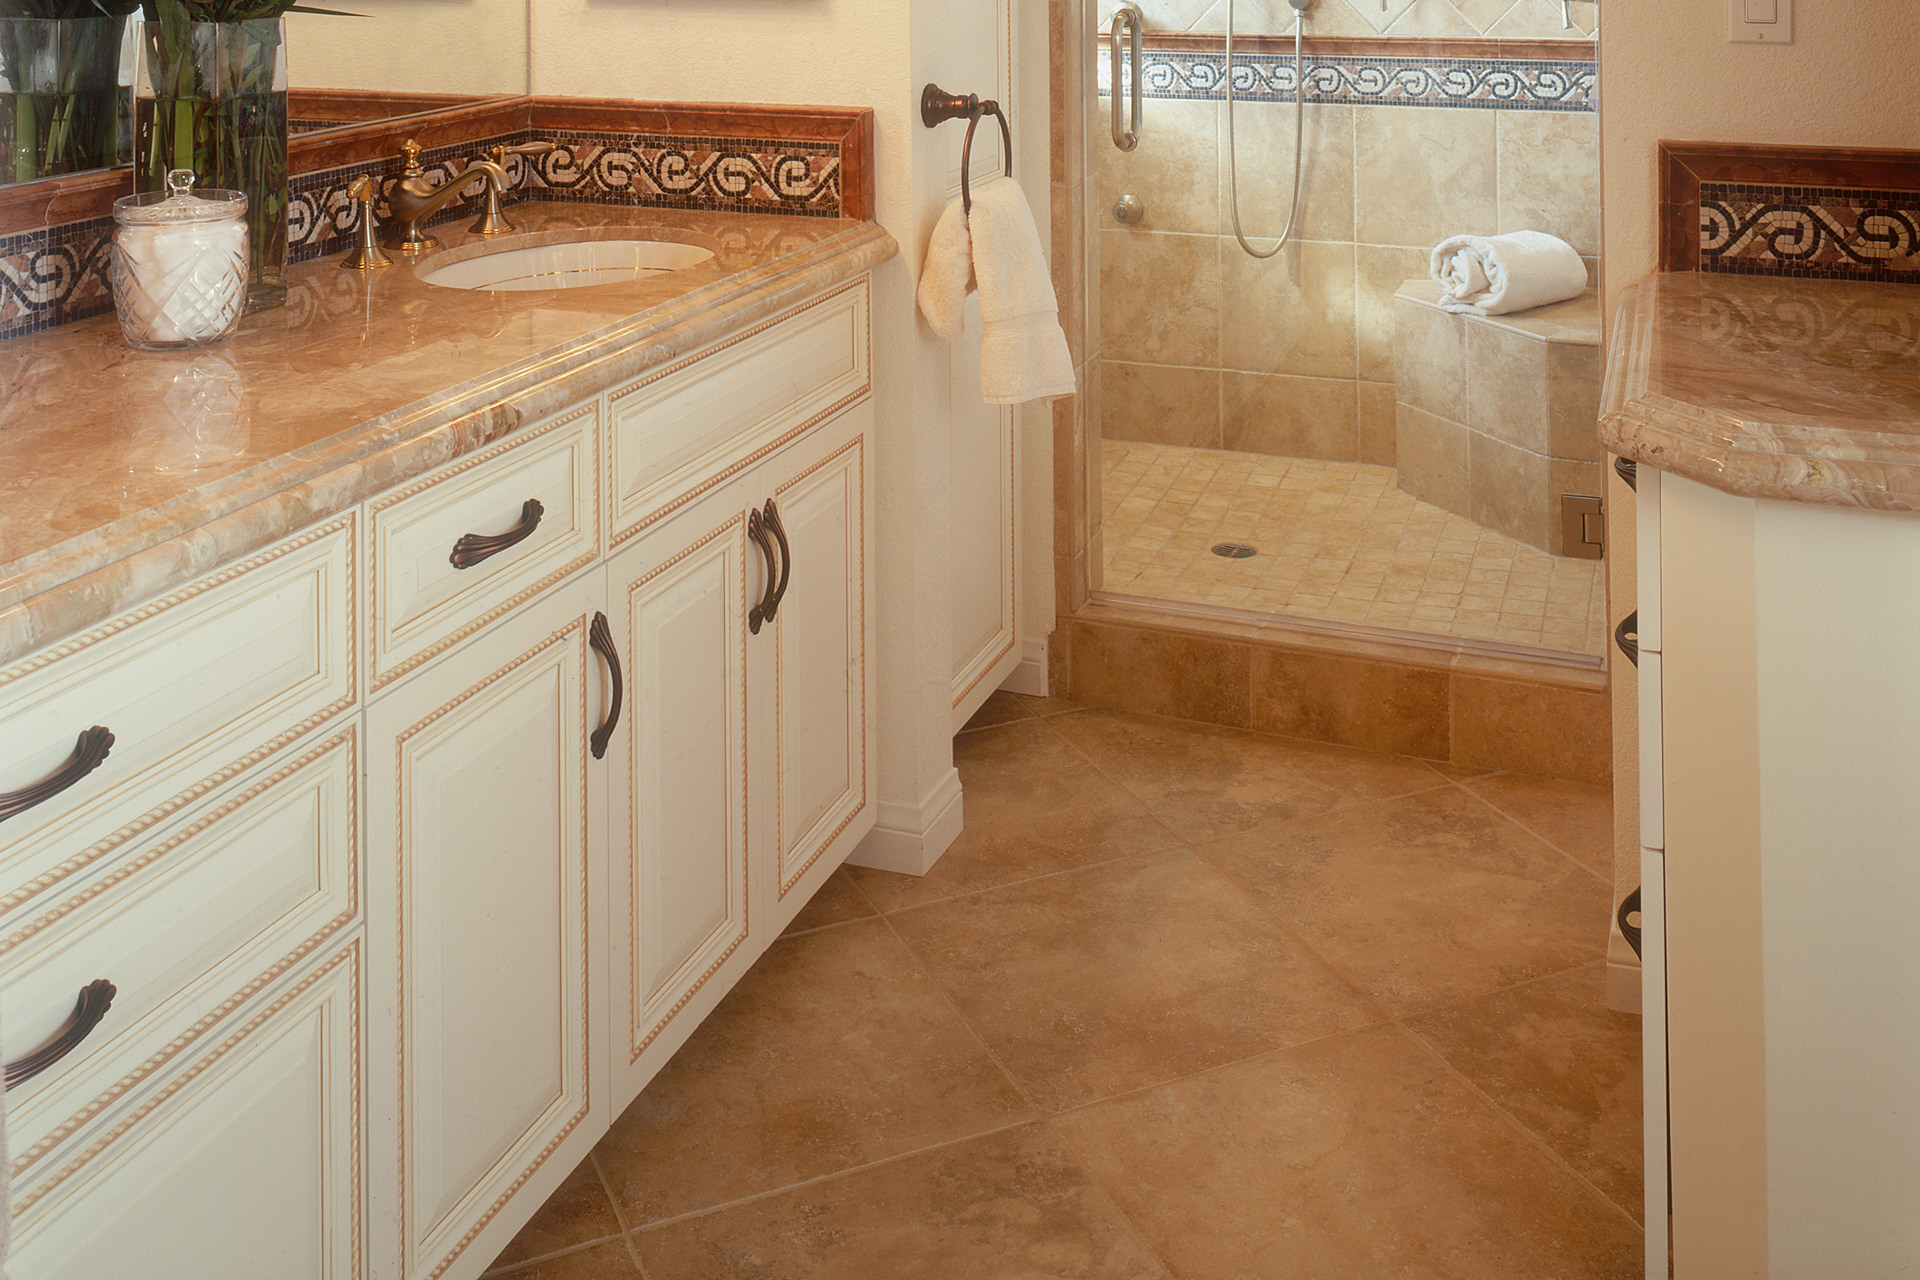 Custom bathroom cabinets curved face sinks two level vessel sinks full overlay bathroom cabinets painted with glaze rope molding on doors dailygadgetfo Images